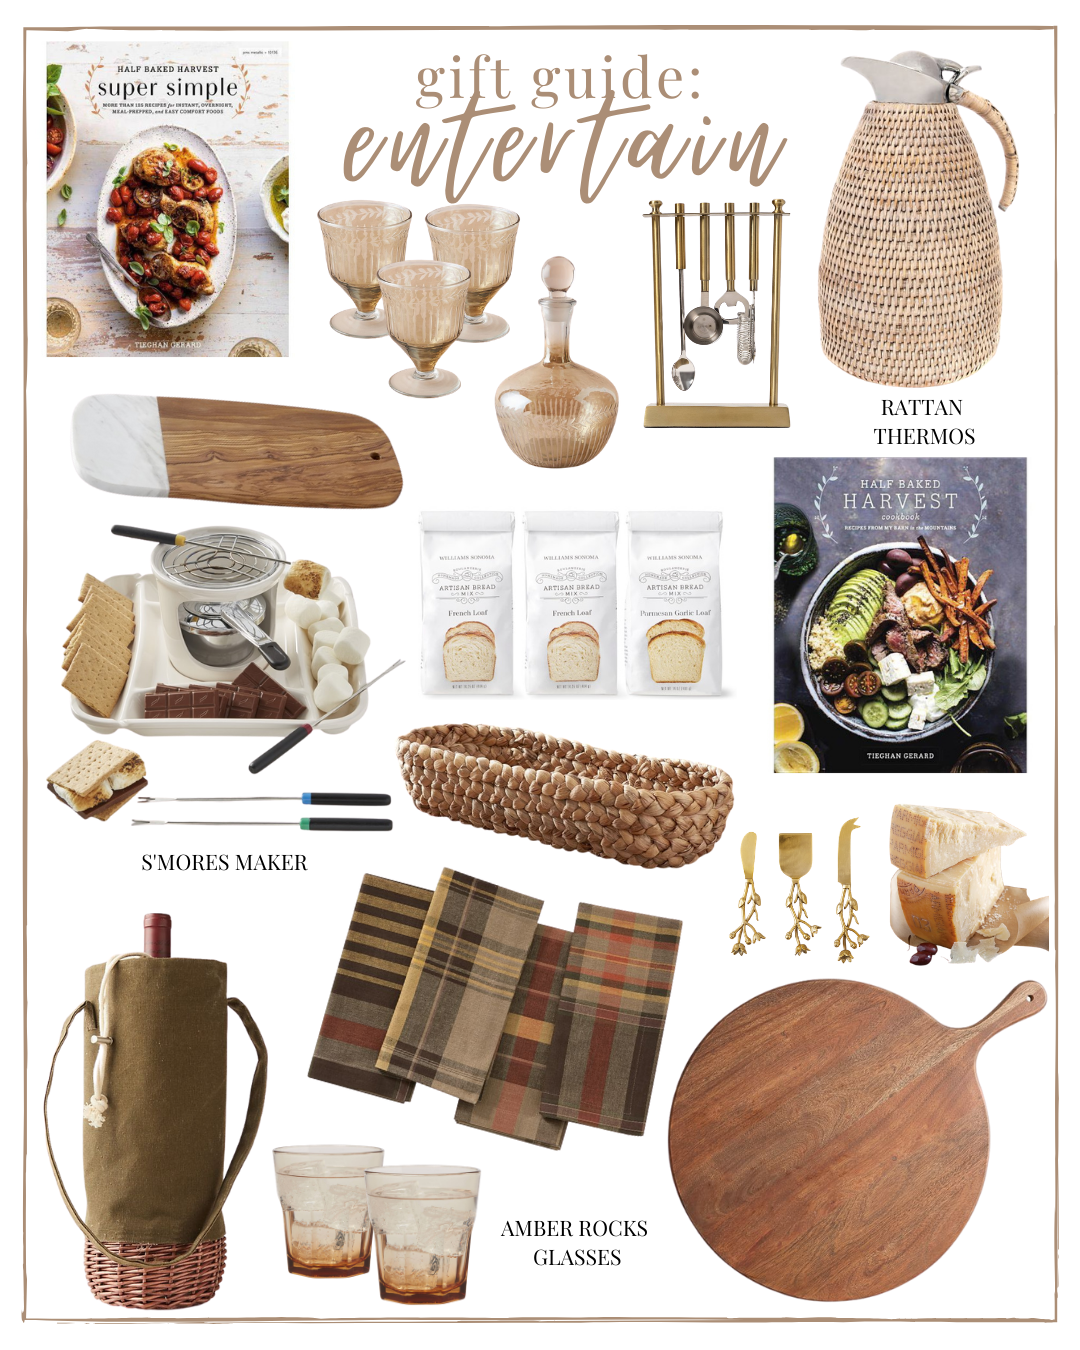 2020 Holiday Gift Guide Entertain: Home & Entertaining Gifts - a gift guide for people that love entertaining | Louella Reese